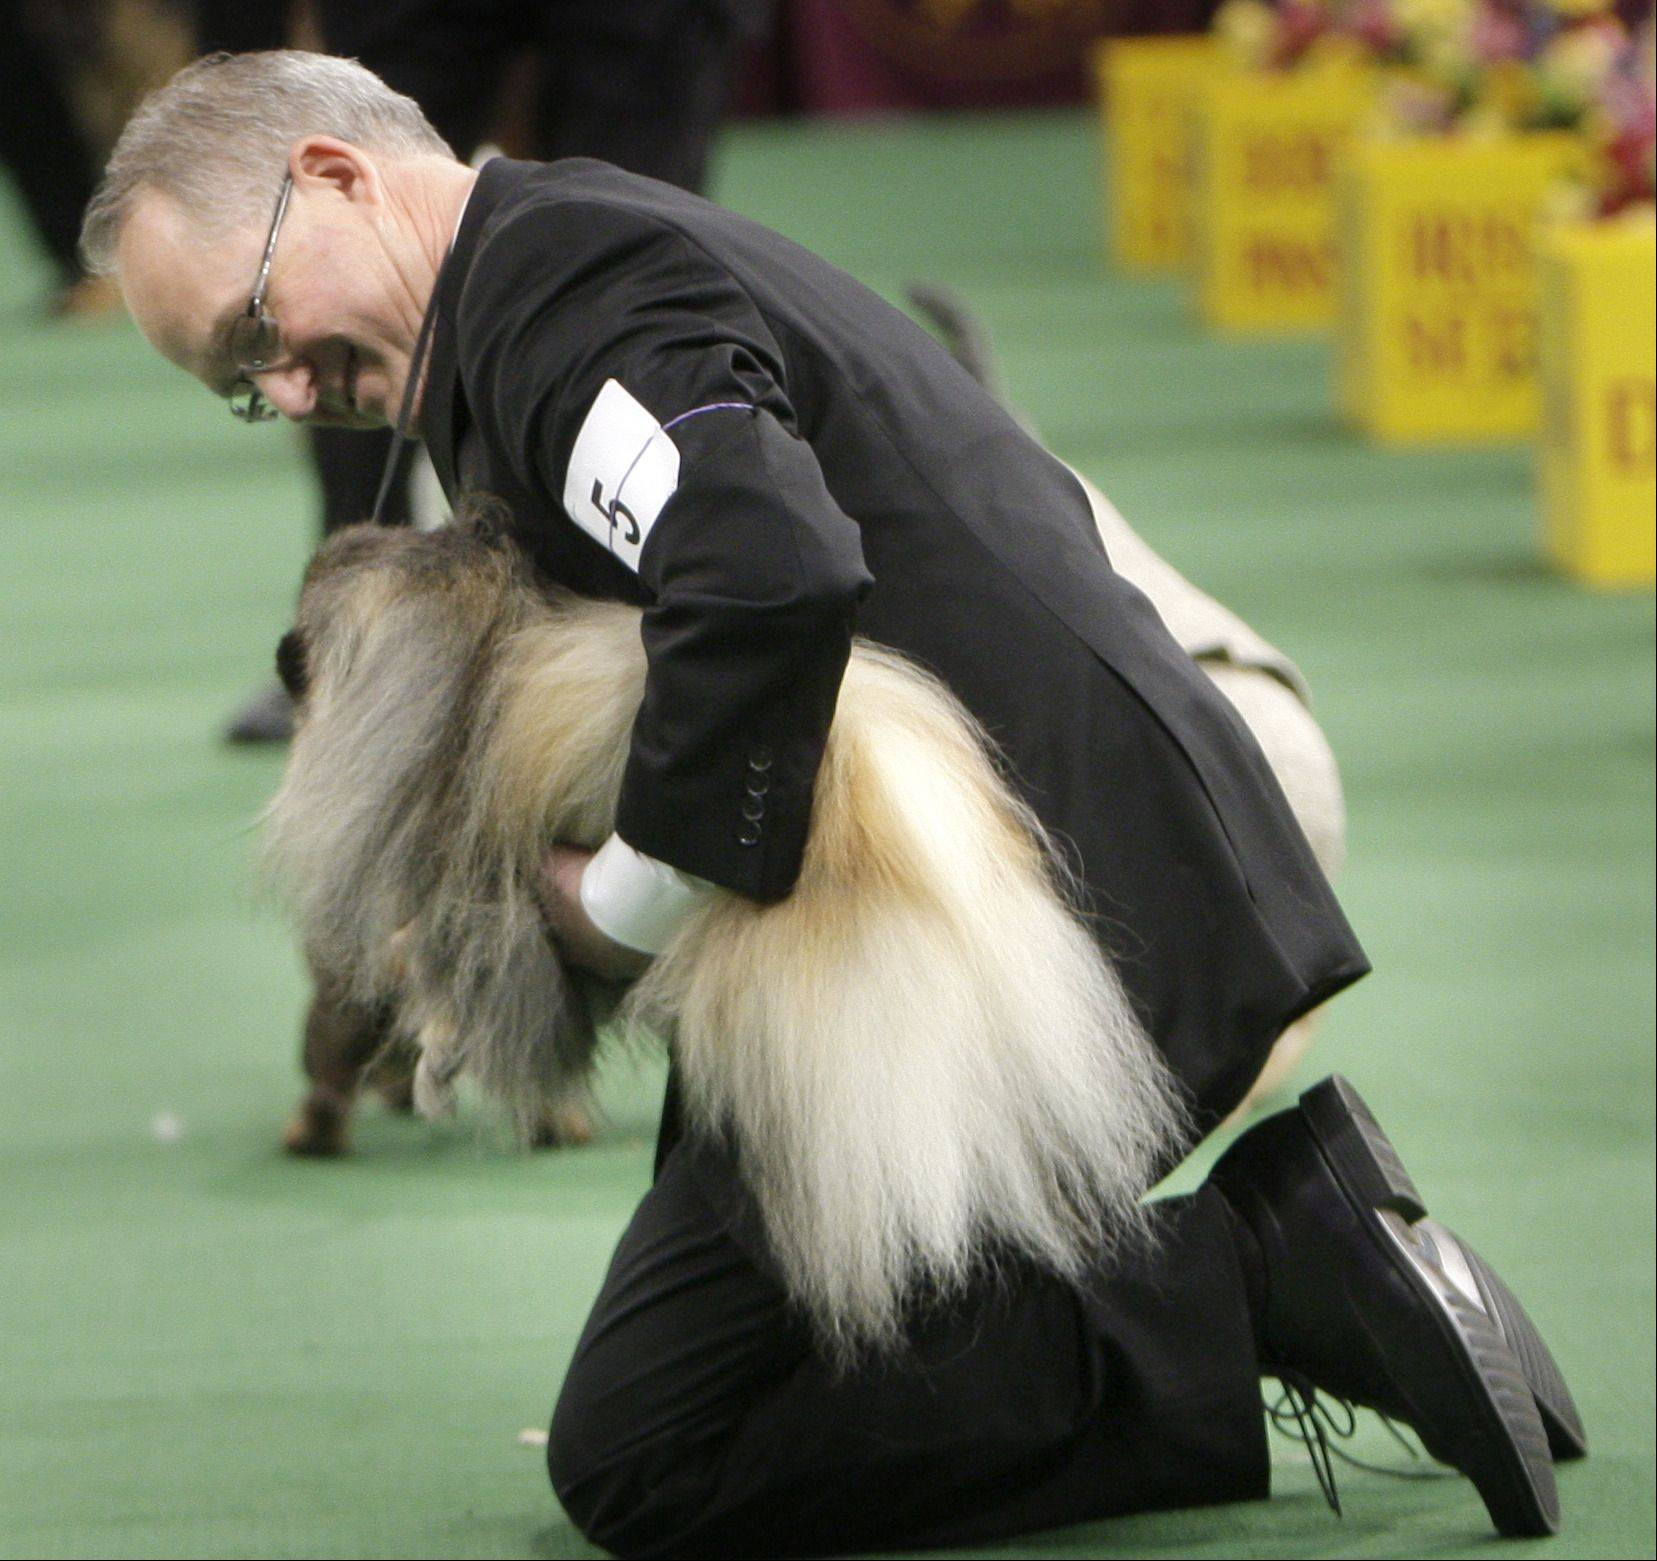 Handler David Fitzpatrick looks at Malachy, a Pekingese, after the animal was named best in show.